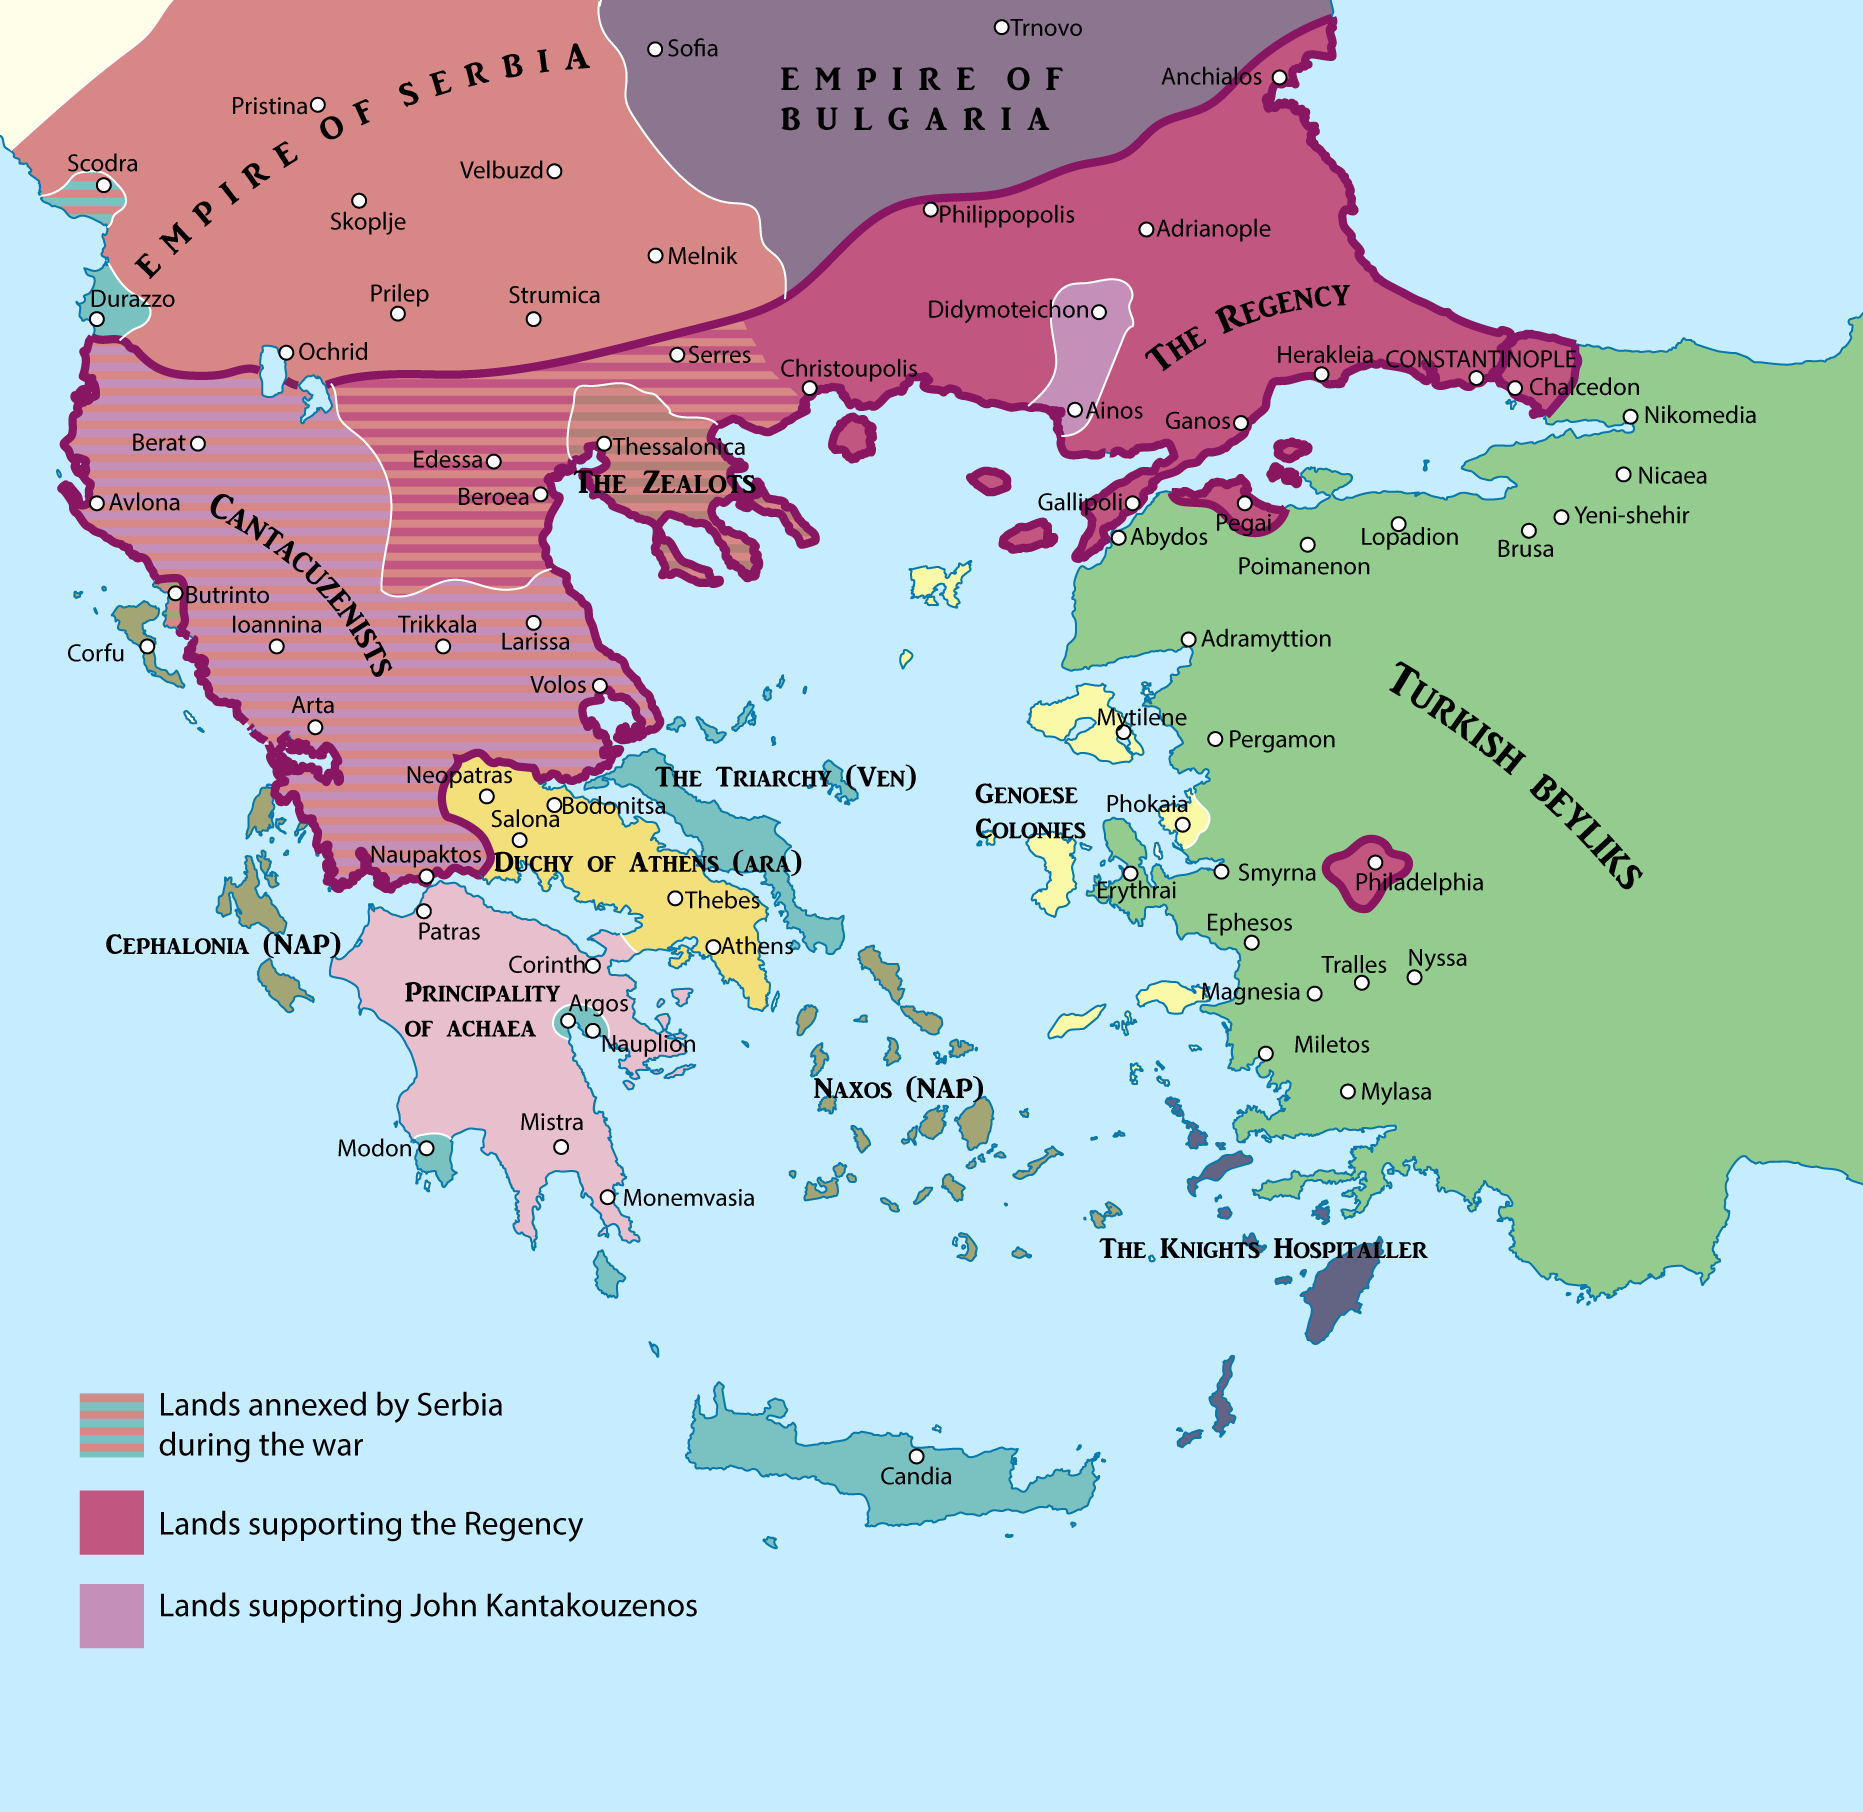 Late Roman Empire Map.The Second Byzantine Civil War 1352 1357 Maps Pinterest